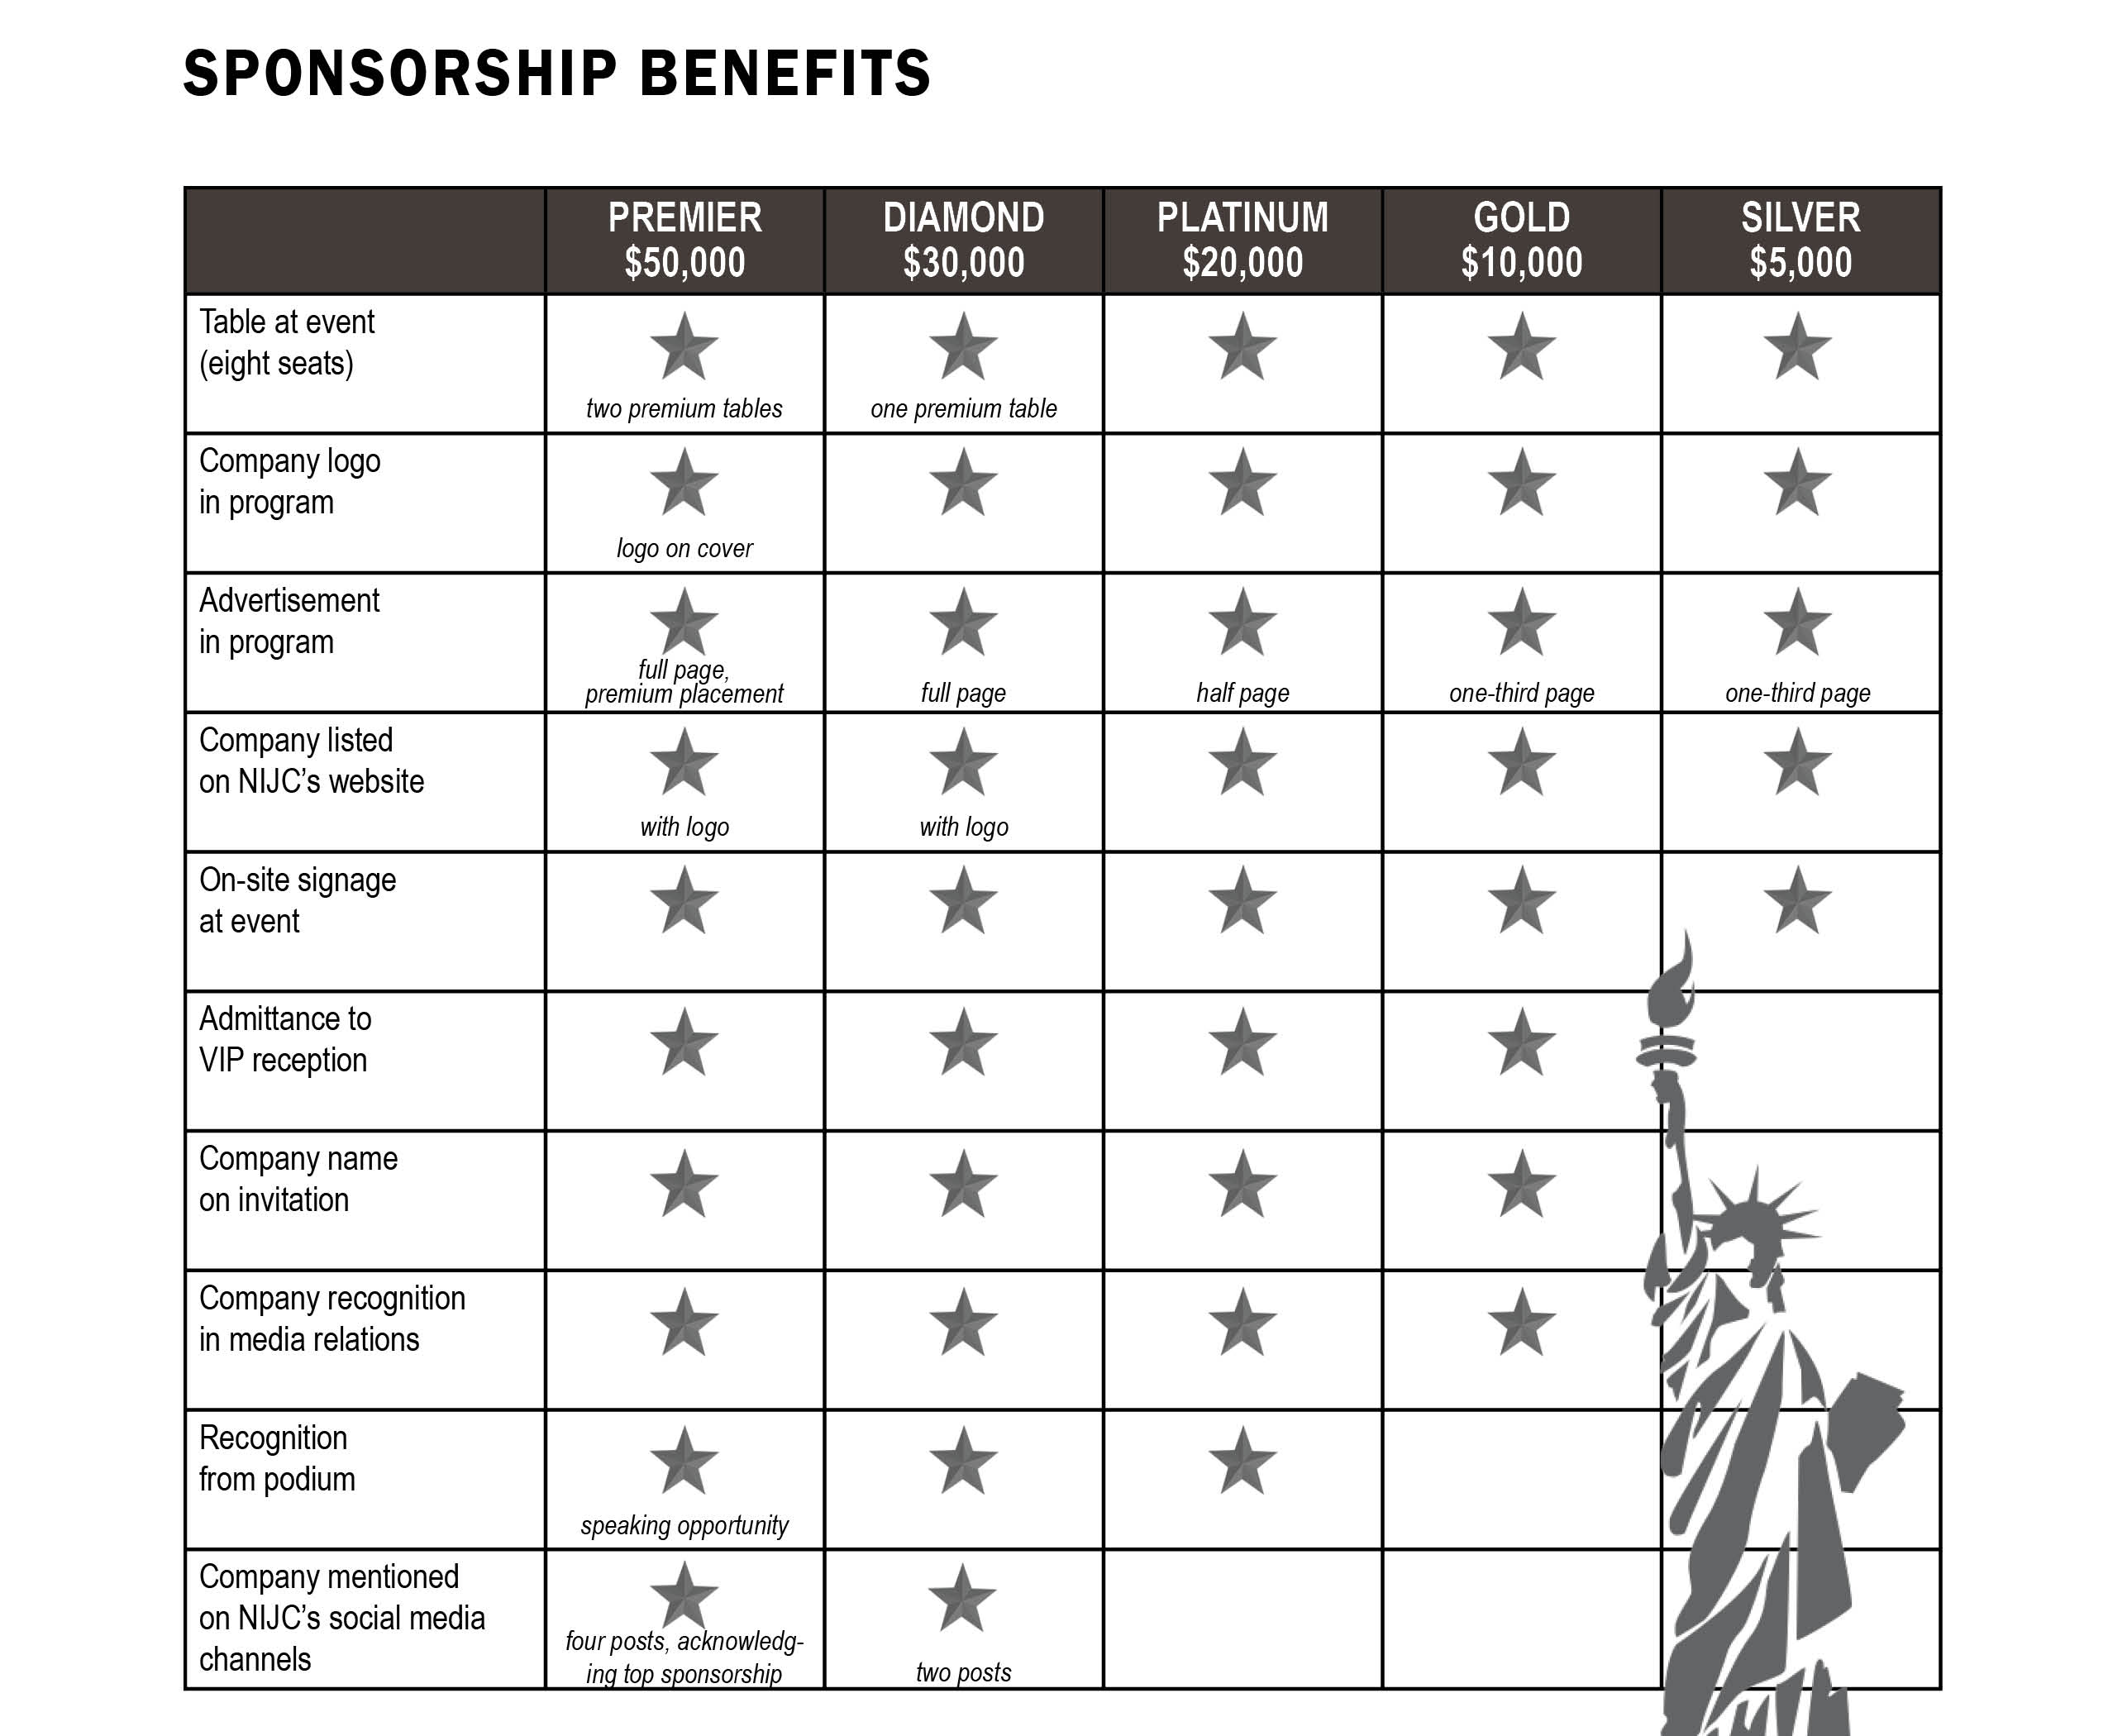 Table with information about sponsorship levels